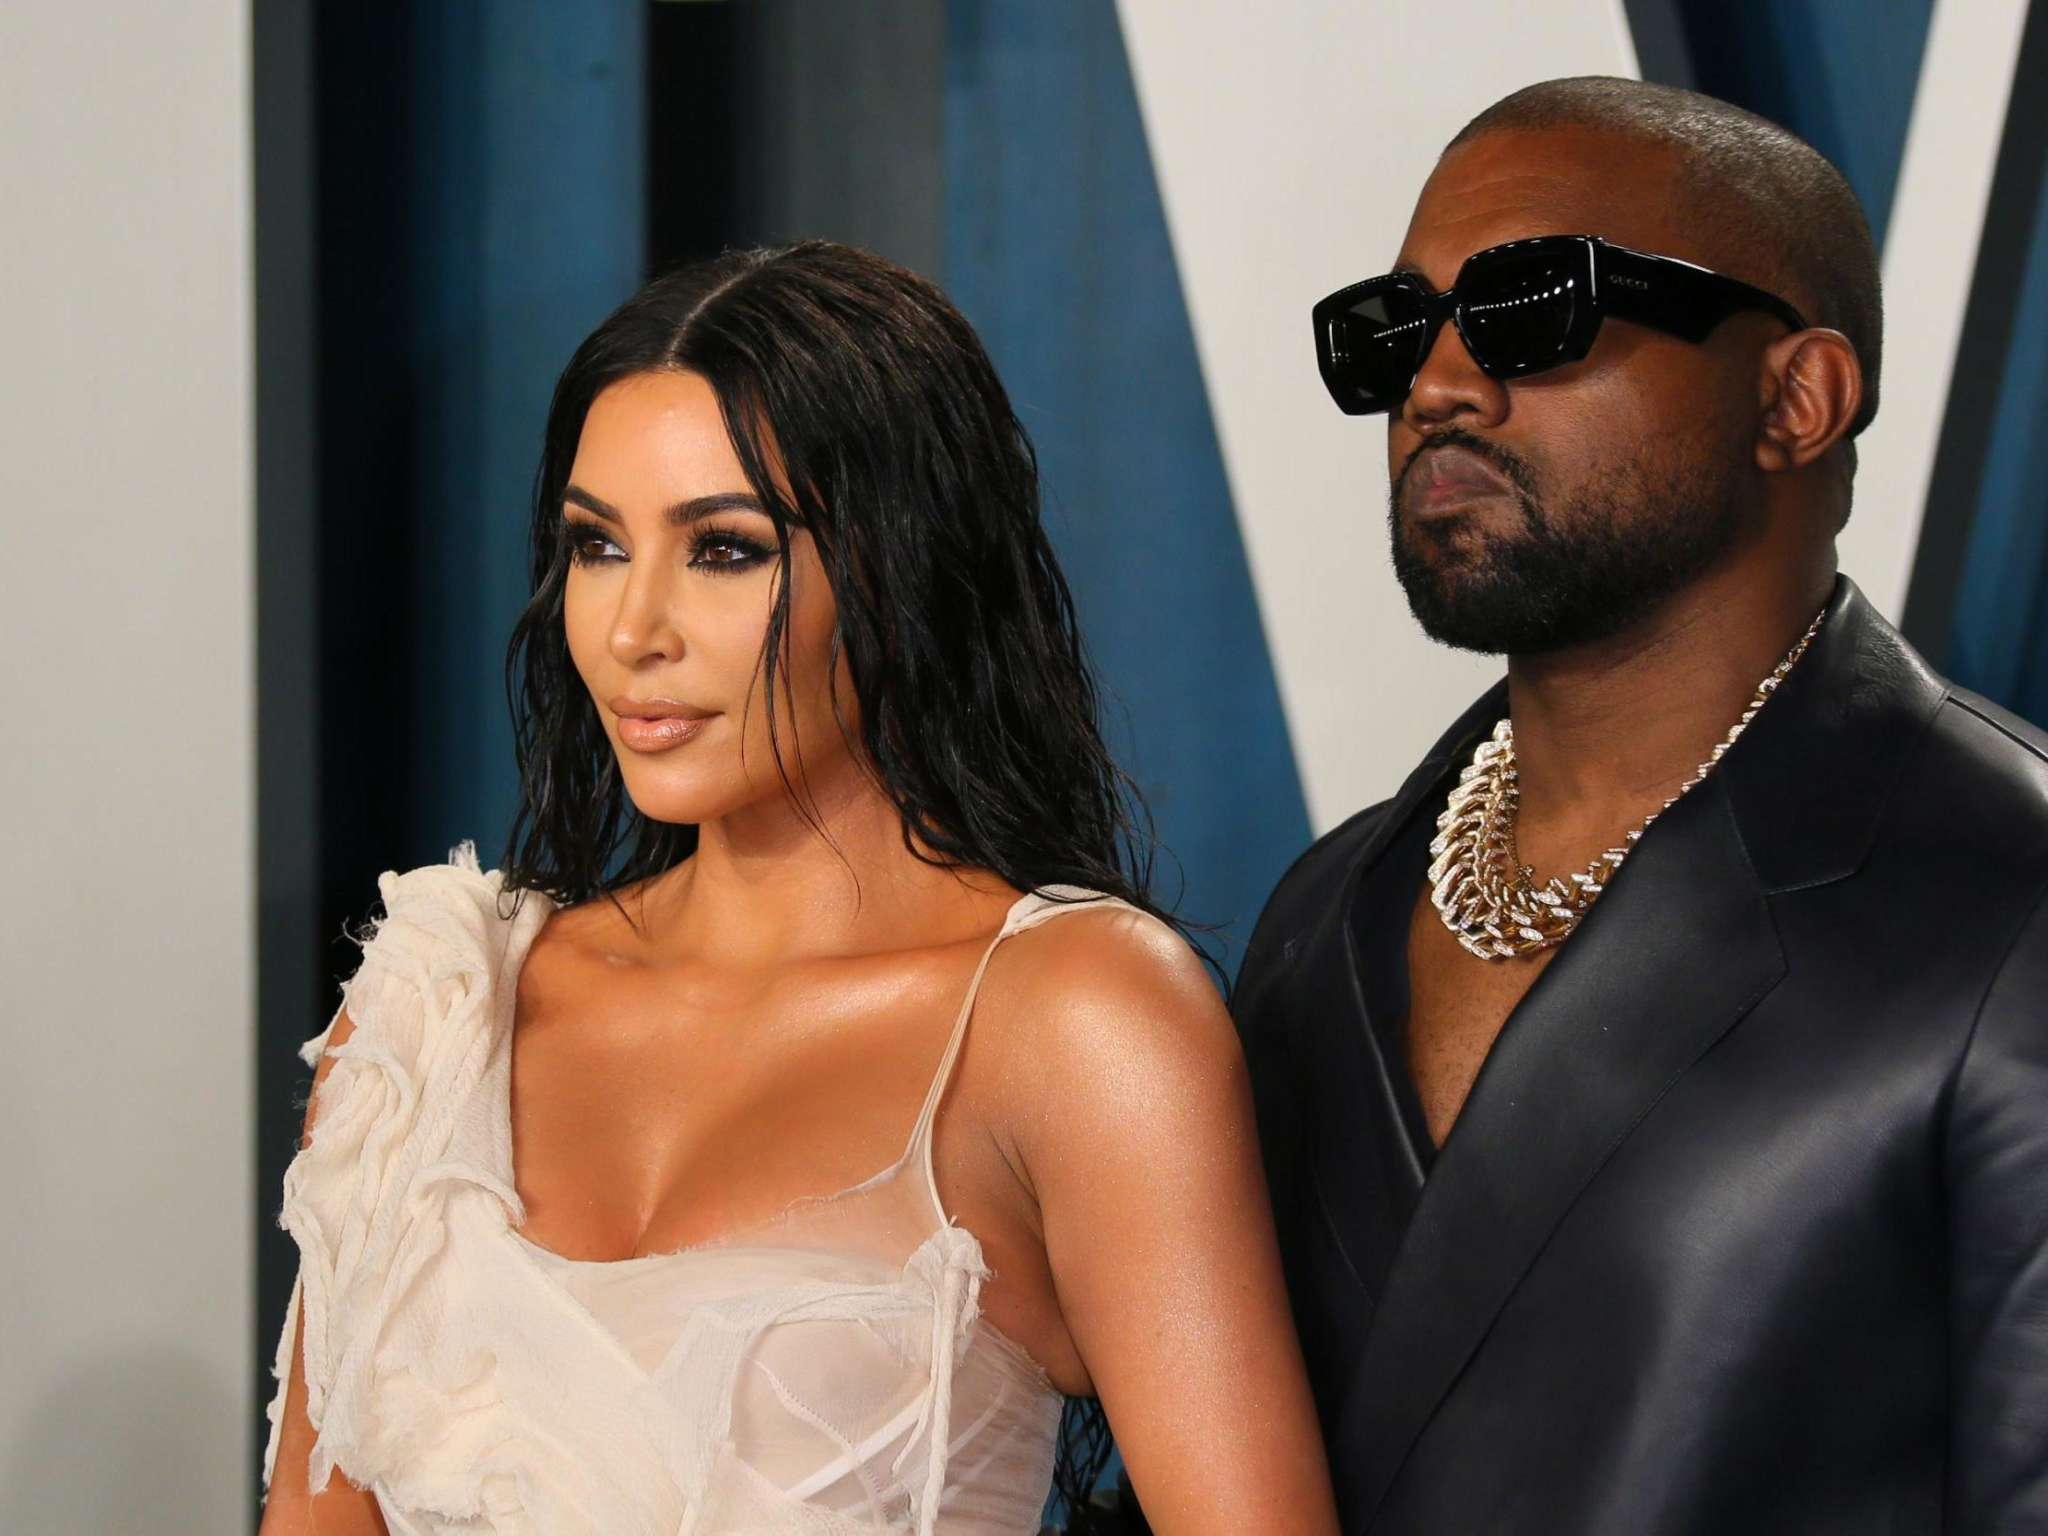 Kim Kardashian And Kanye West Look Bomb At The Oscars